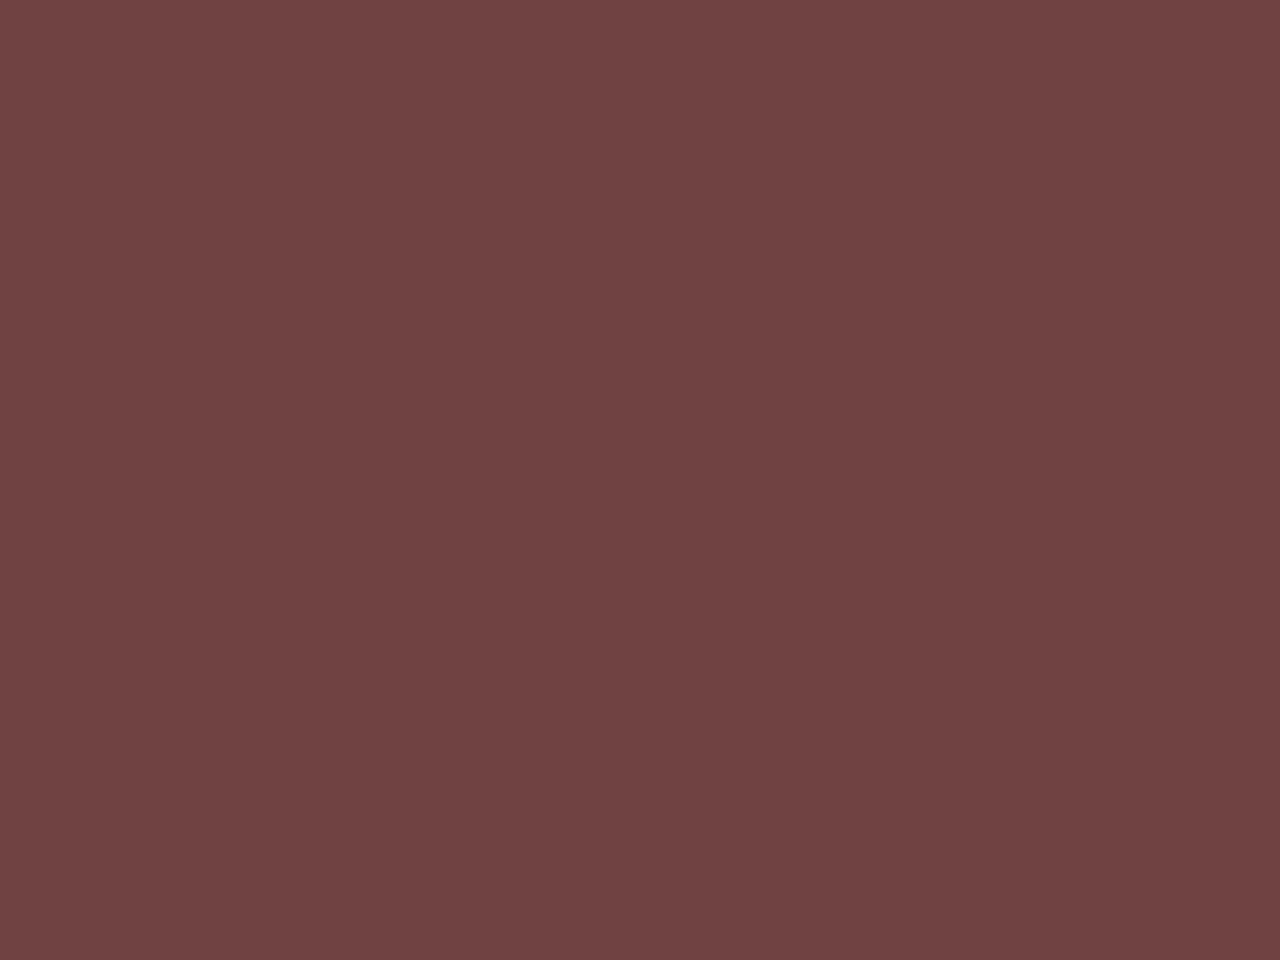 1280x960 Deep Coffee Solid Color Background